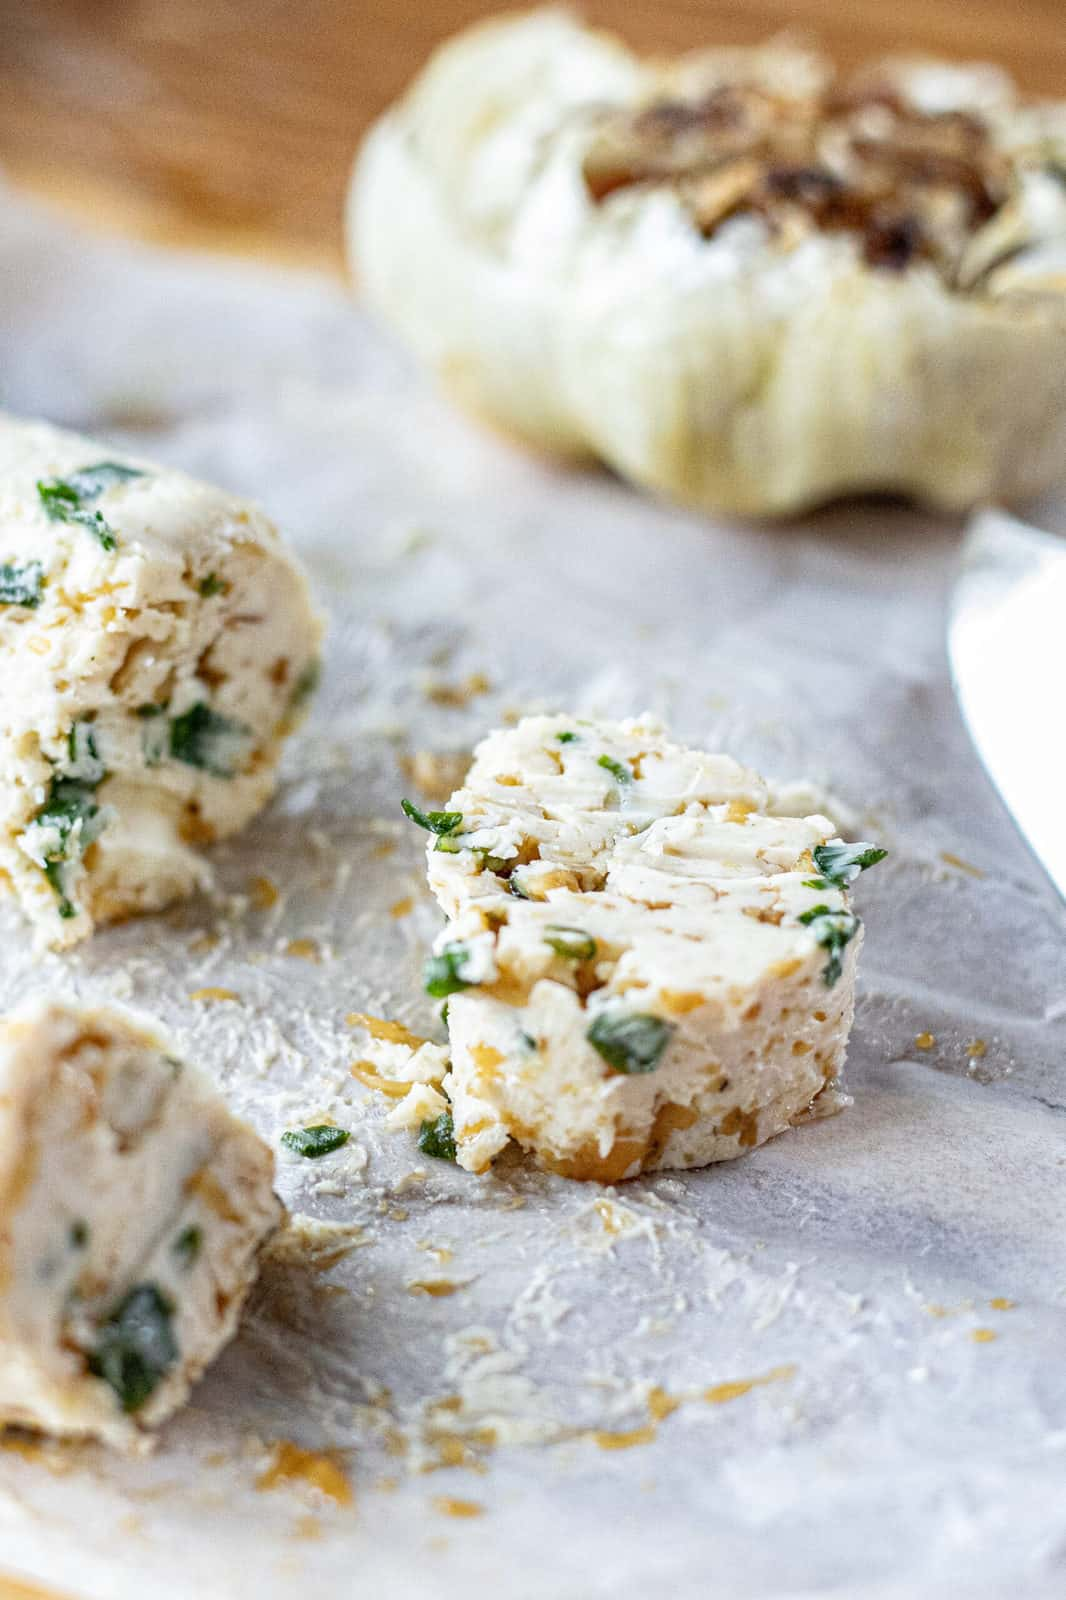 Sliced compound butter with roasted garlic and chives shown up close.